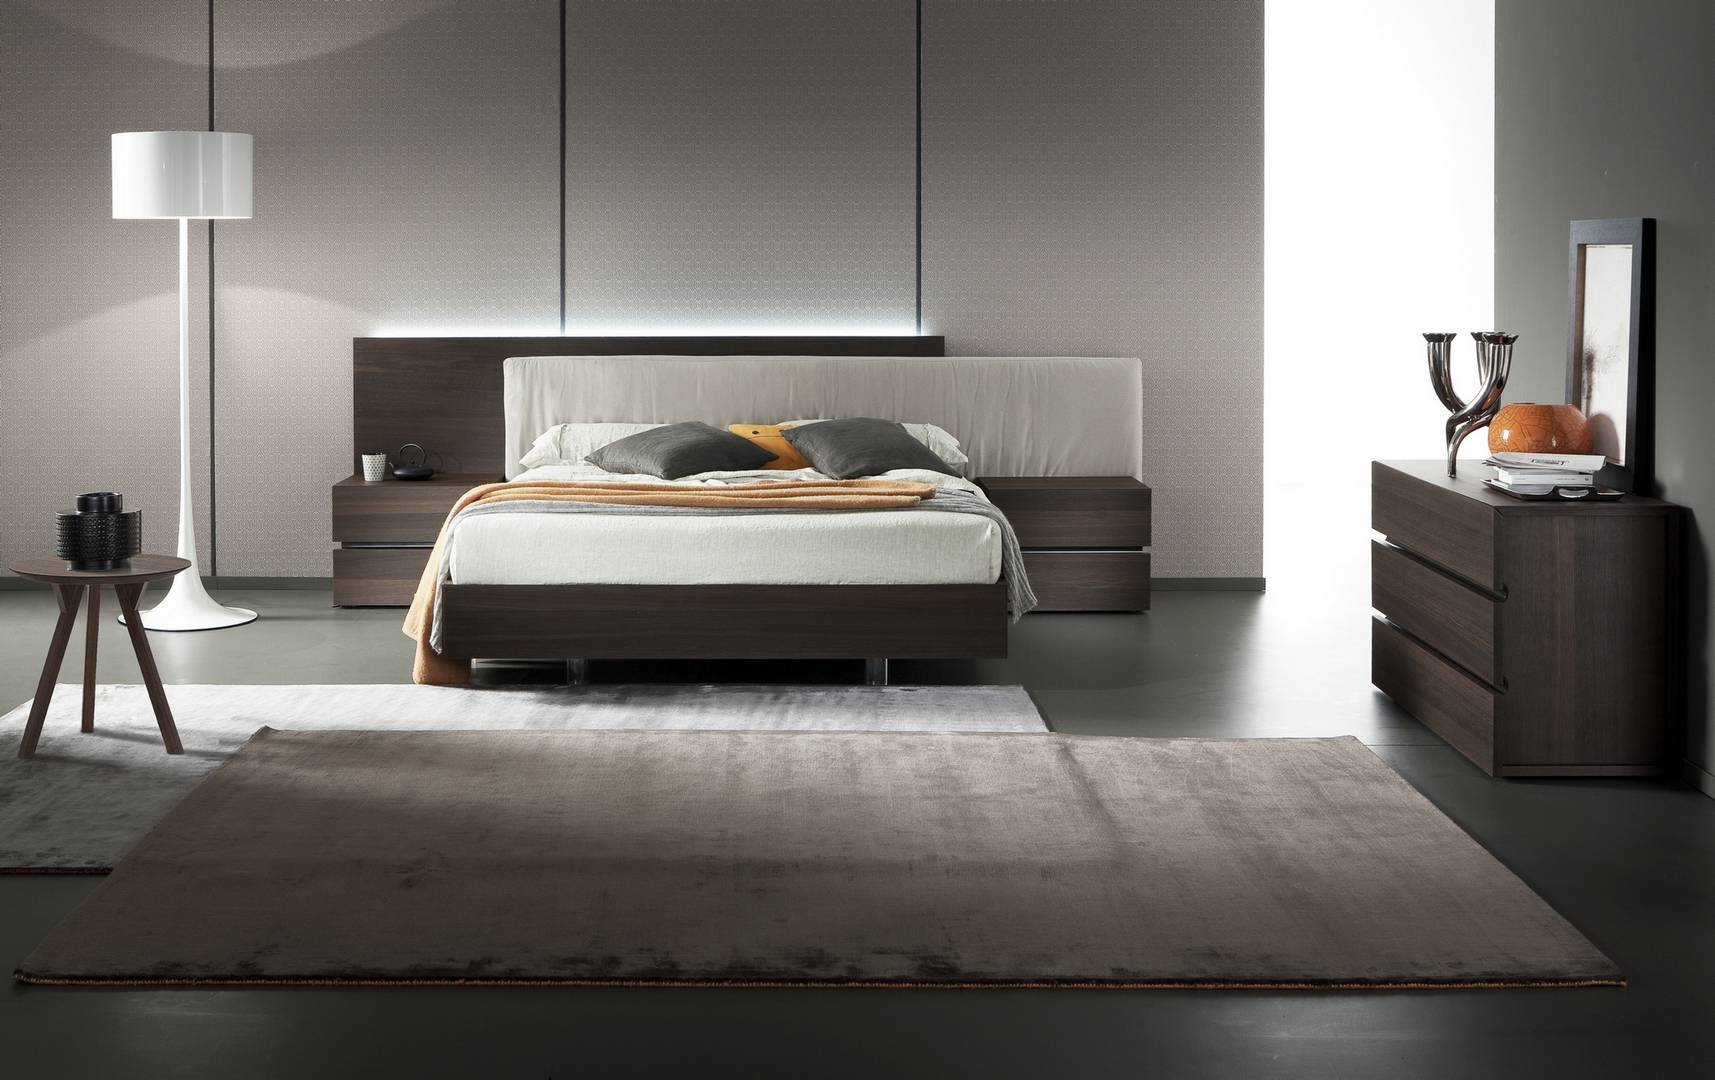 Italian bedrooms furniture Black Italian Bedroom Bedroom Sets Collection Master Bedroom Furniture Prime Classic Design Made In Italy Wood Modern Contemporary Bedroom Sets San Diego